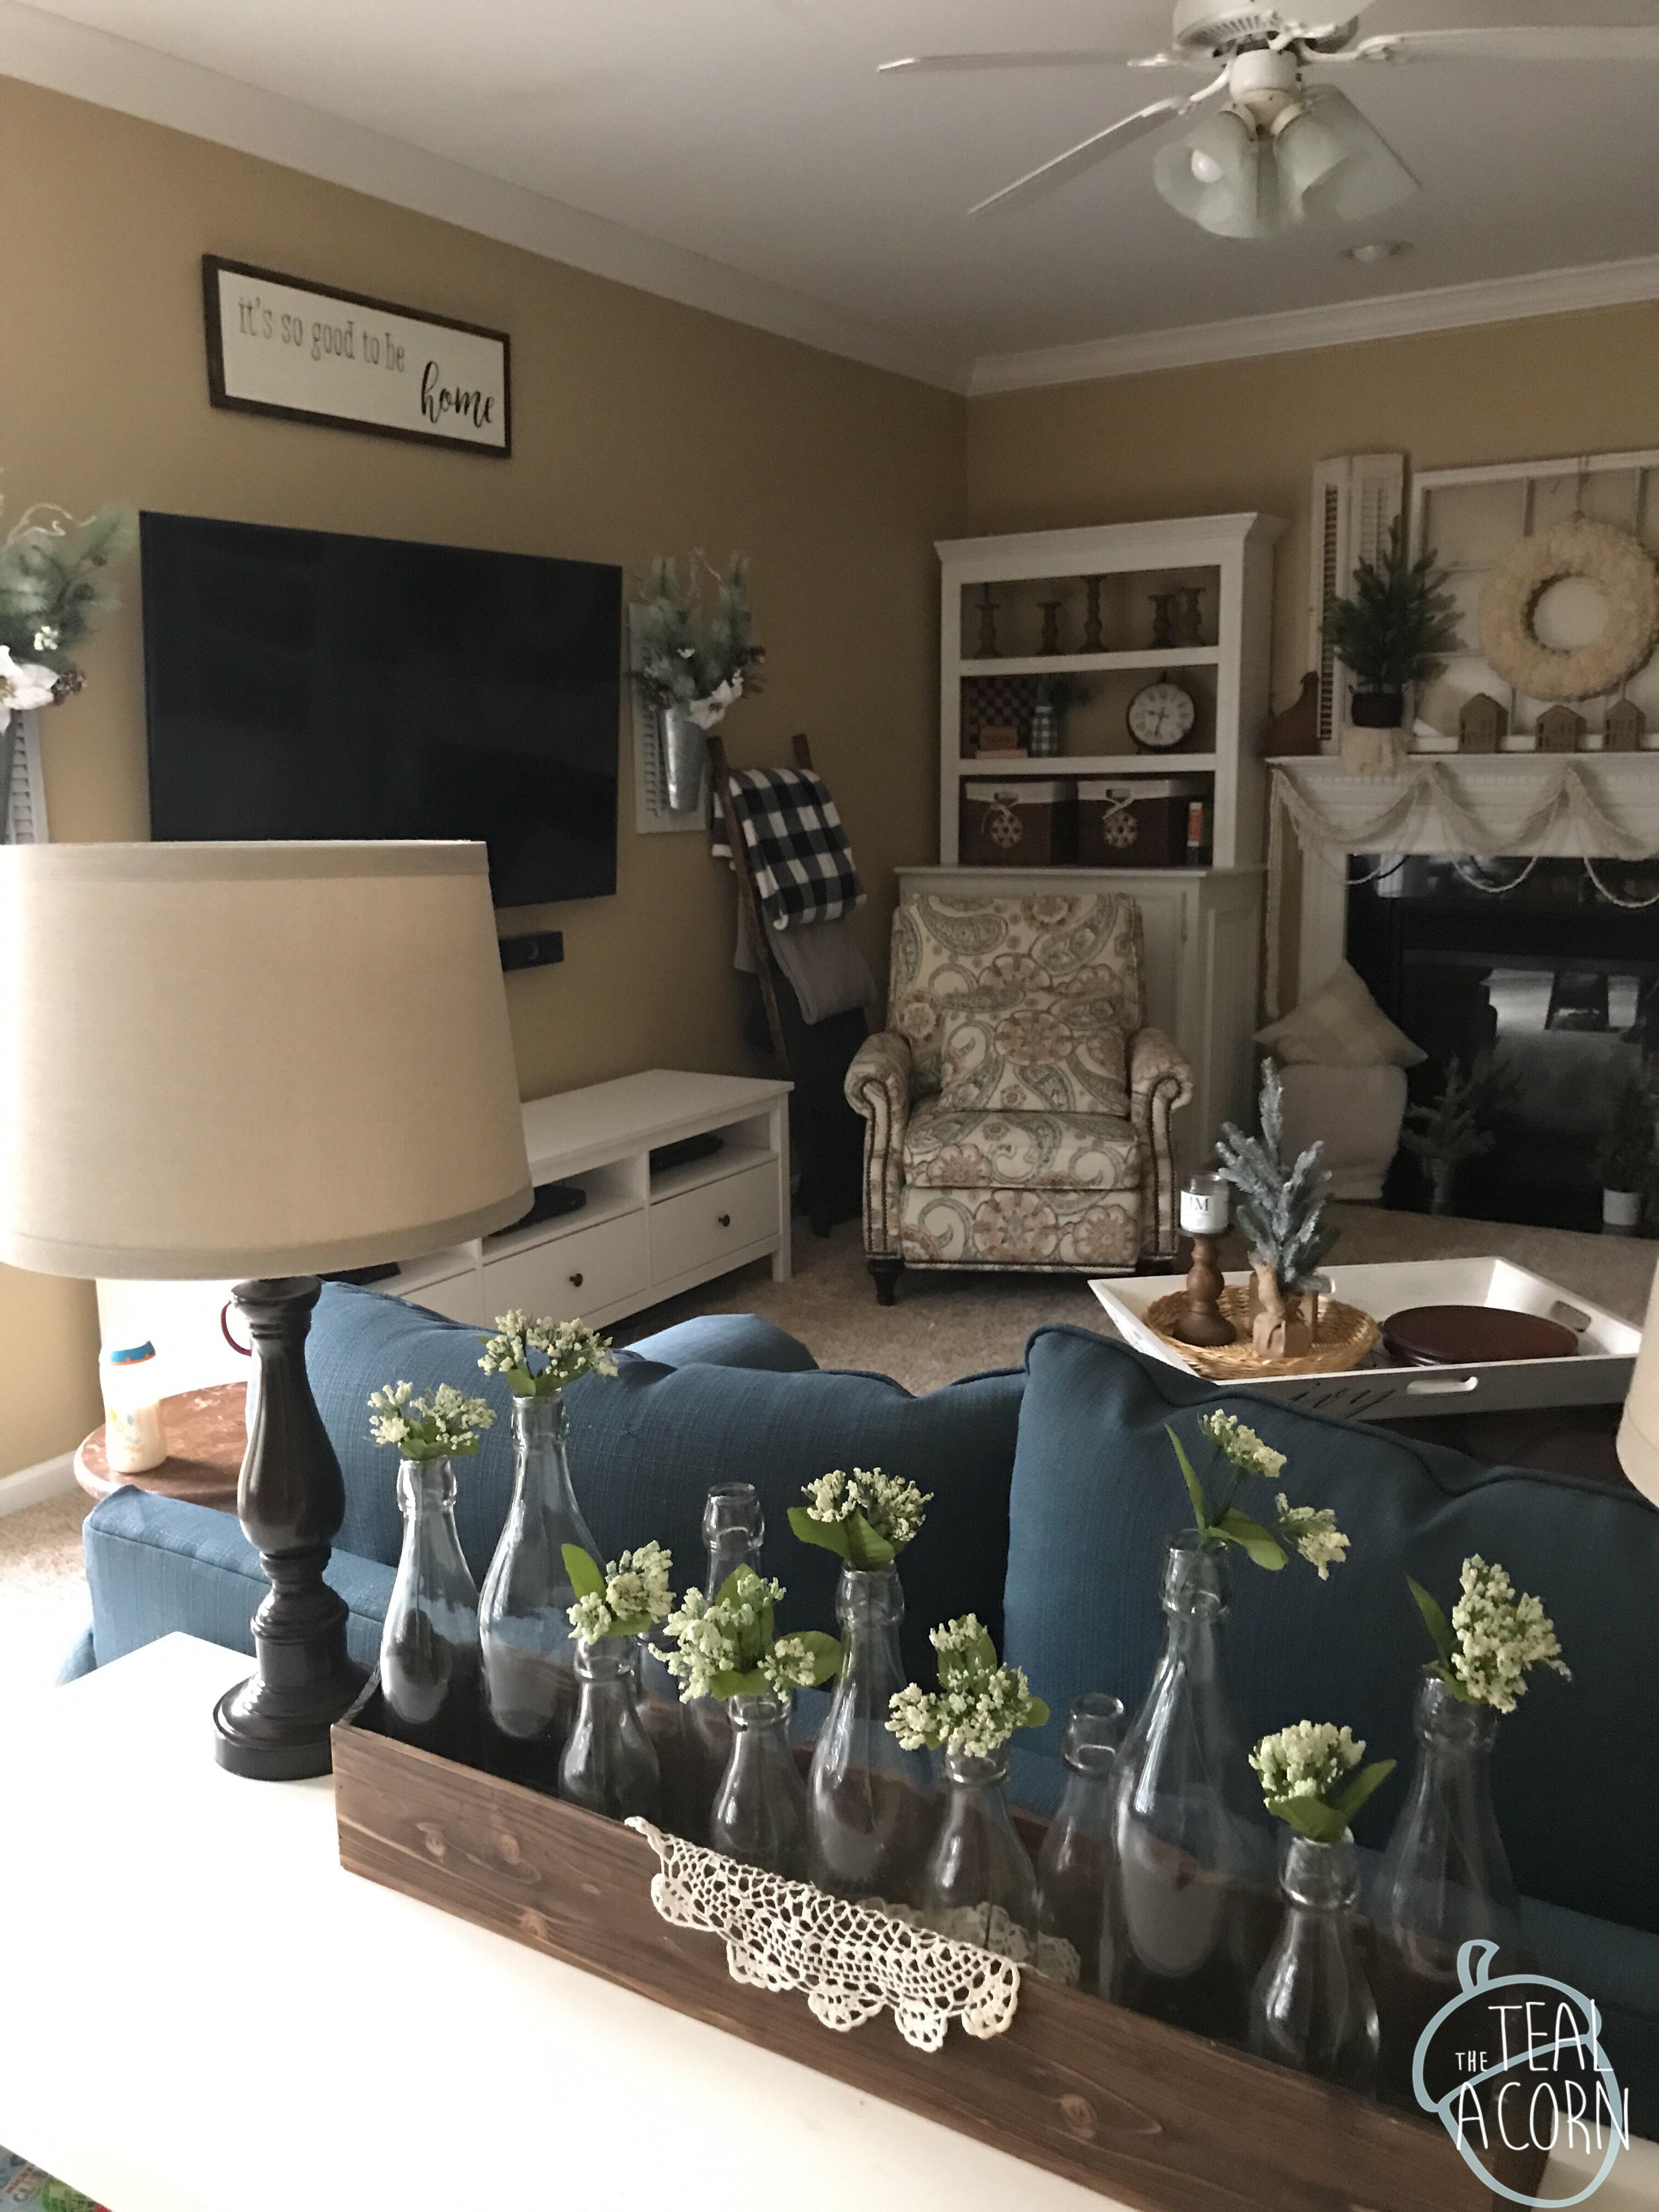 Winter decor in a farmhouse style family room with teal couch and printed armchair